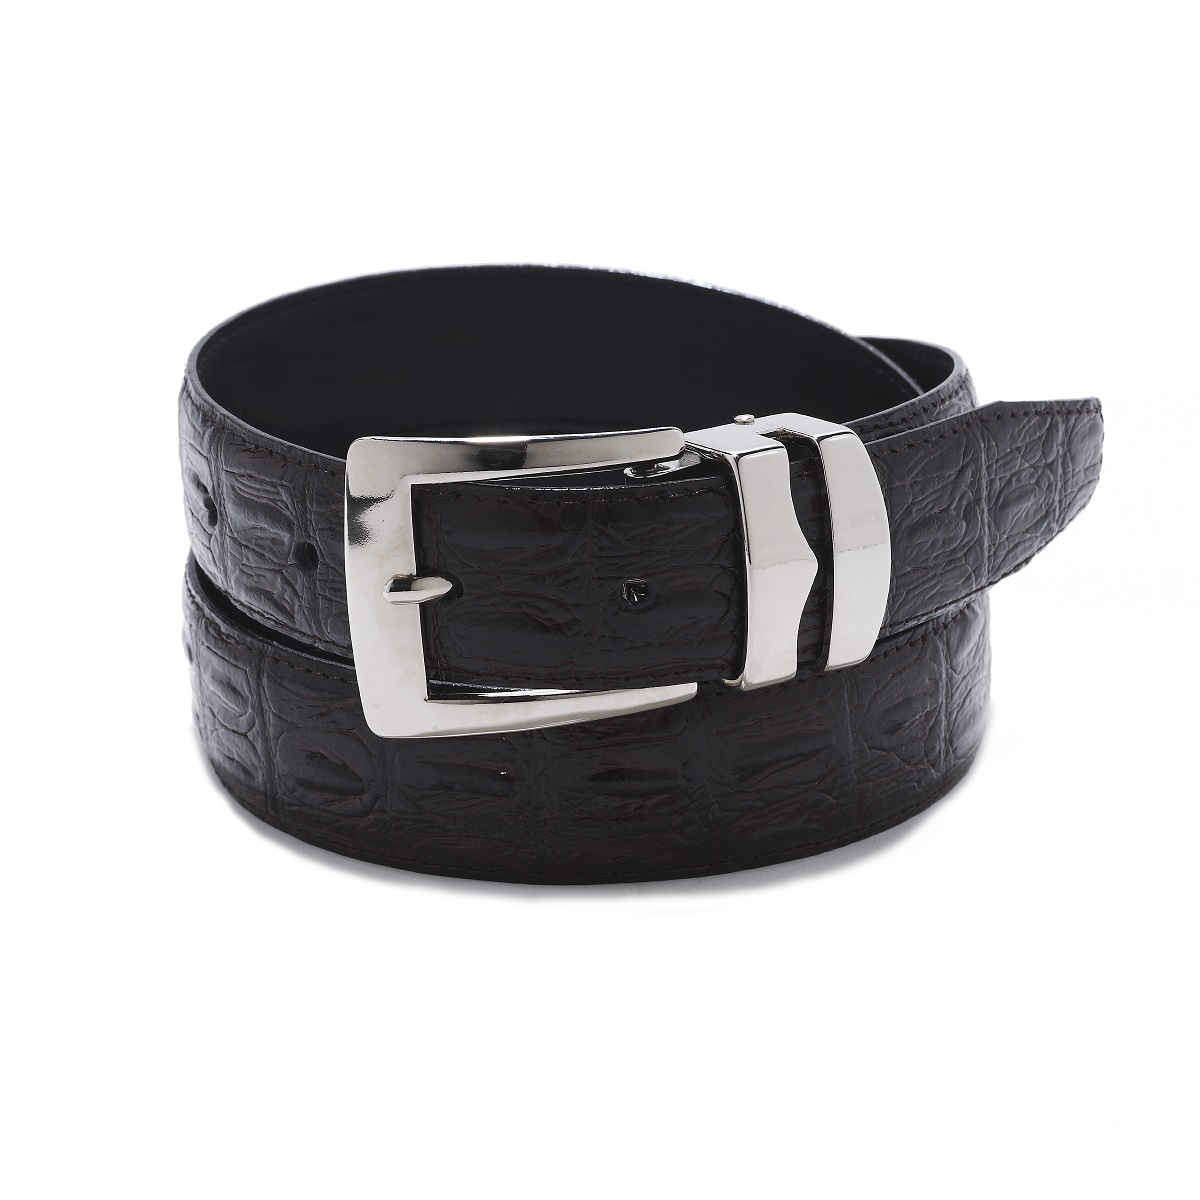 Reversible Belt Bonded Leather with Removable Gold-Tone Buckle BLACK//Black